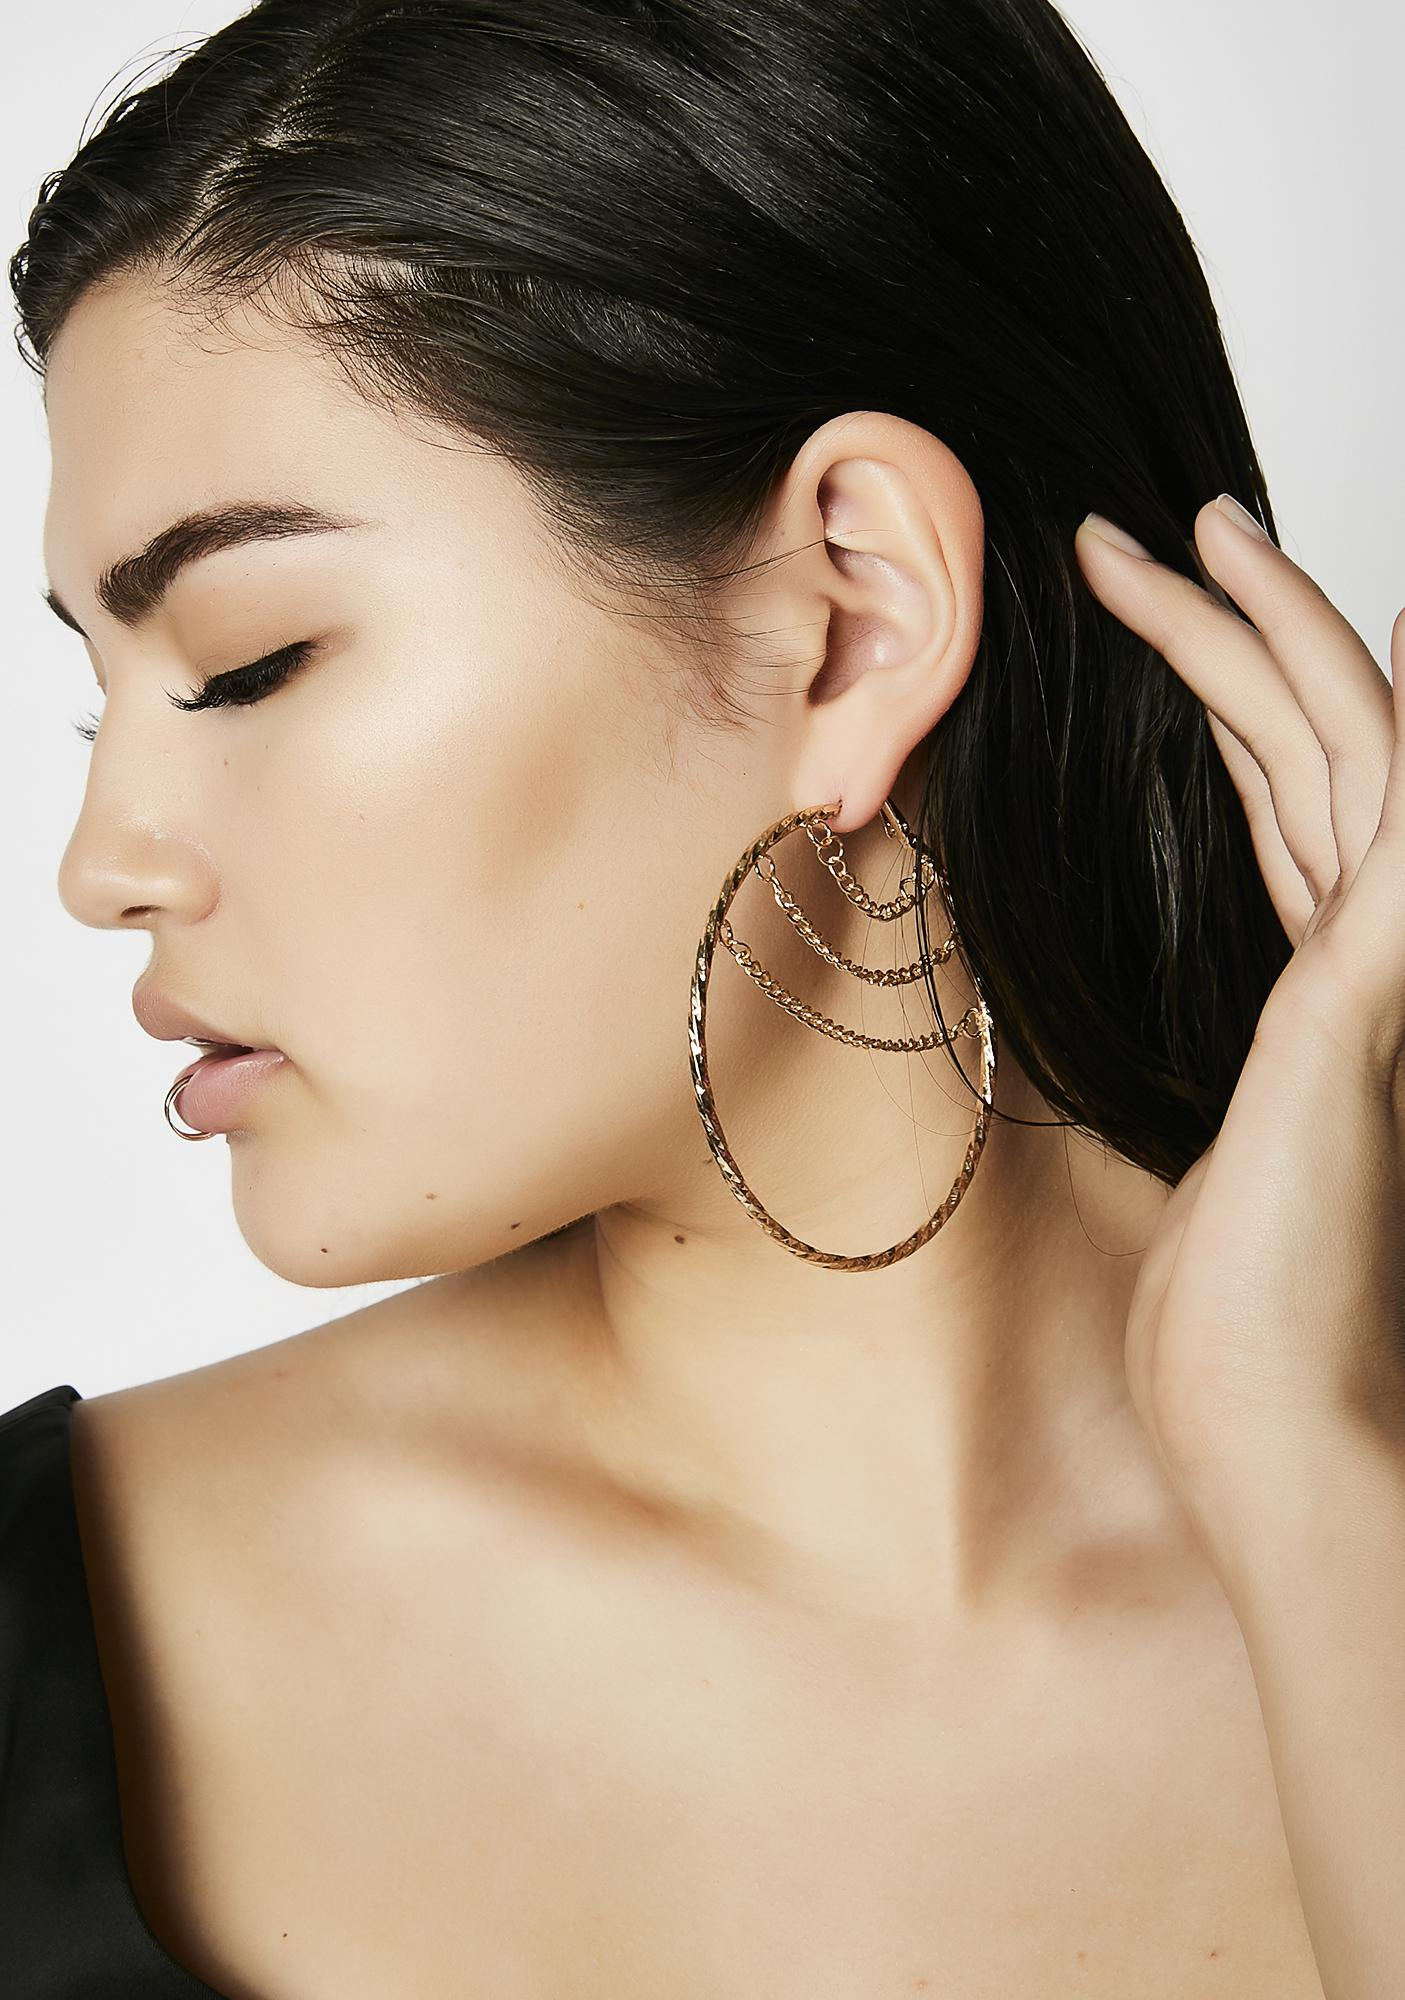 Chained 2 U Earrings